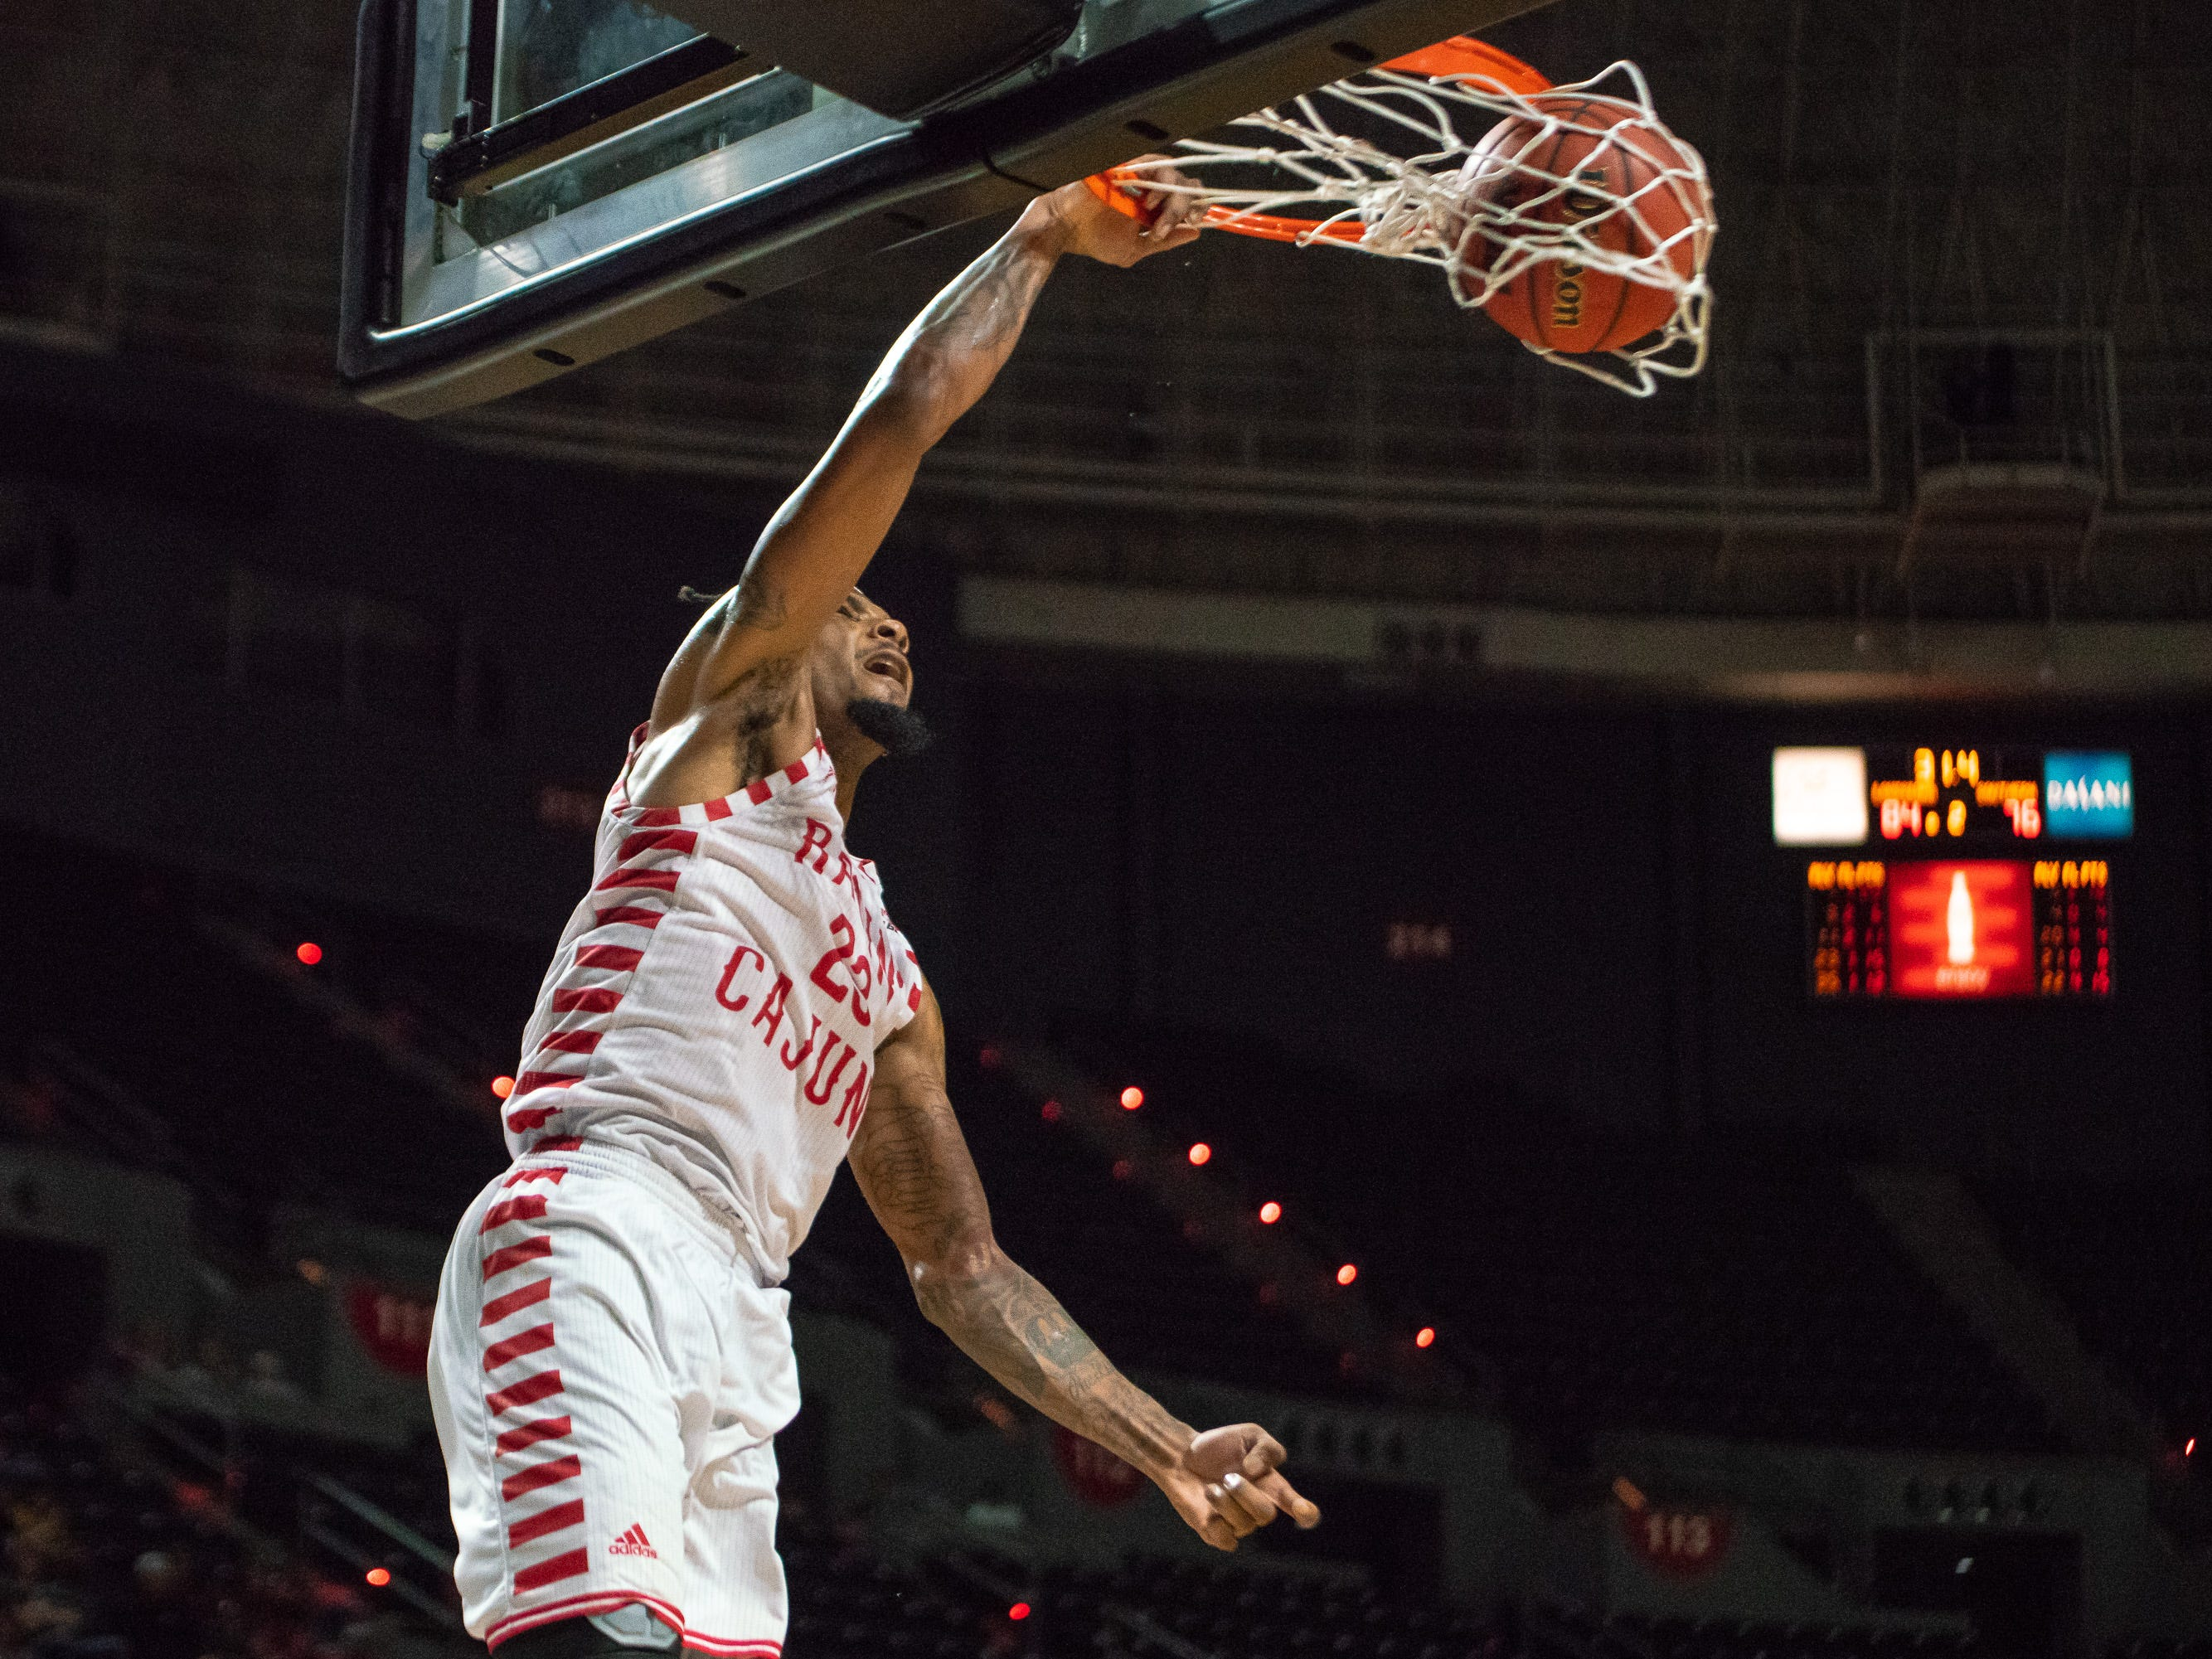 UL's Jakeenan Gant scores with a dunk as the Ragin' Cajuns play against the Southern University Jaguars at the Cajundome on December 1, 2018.